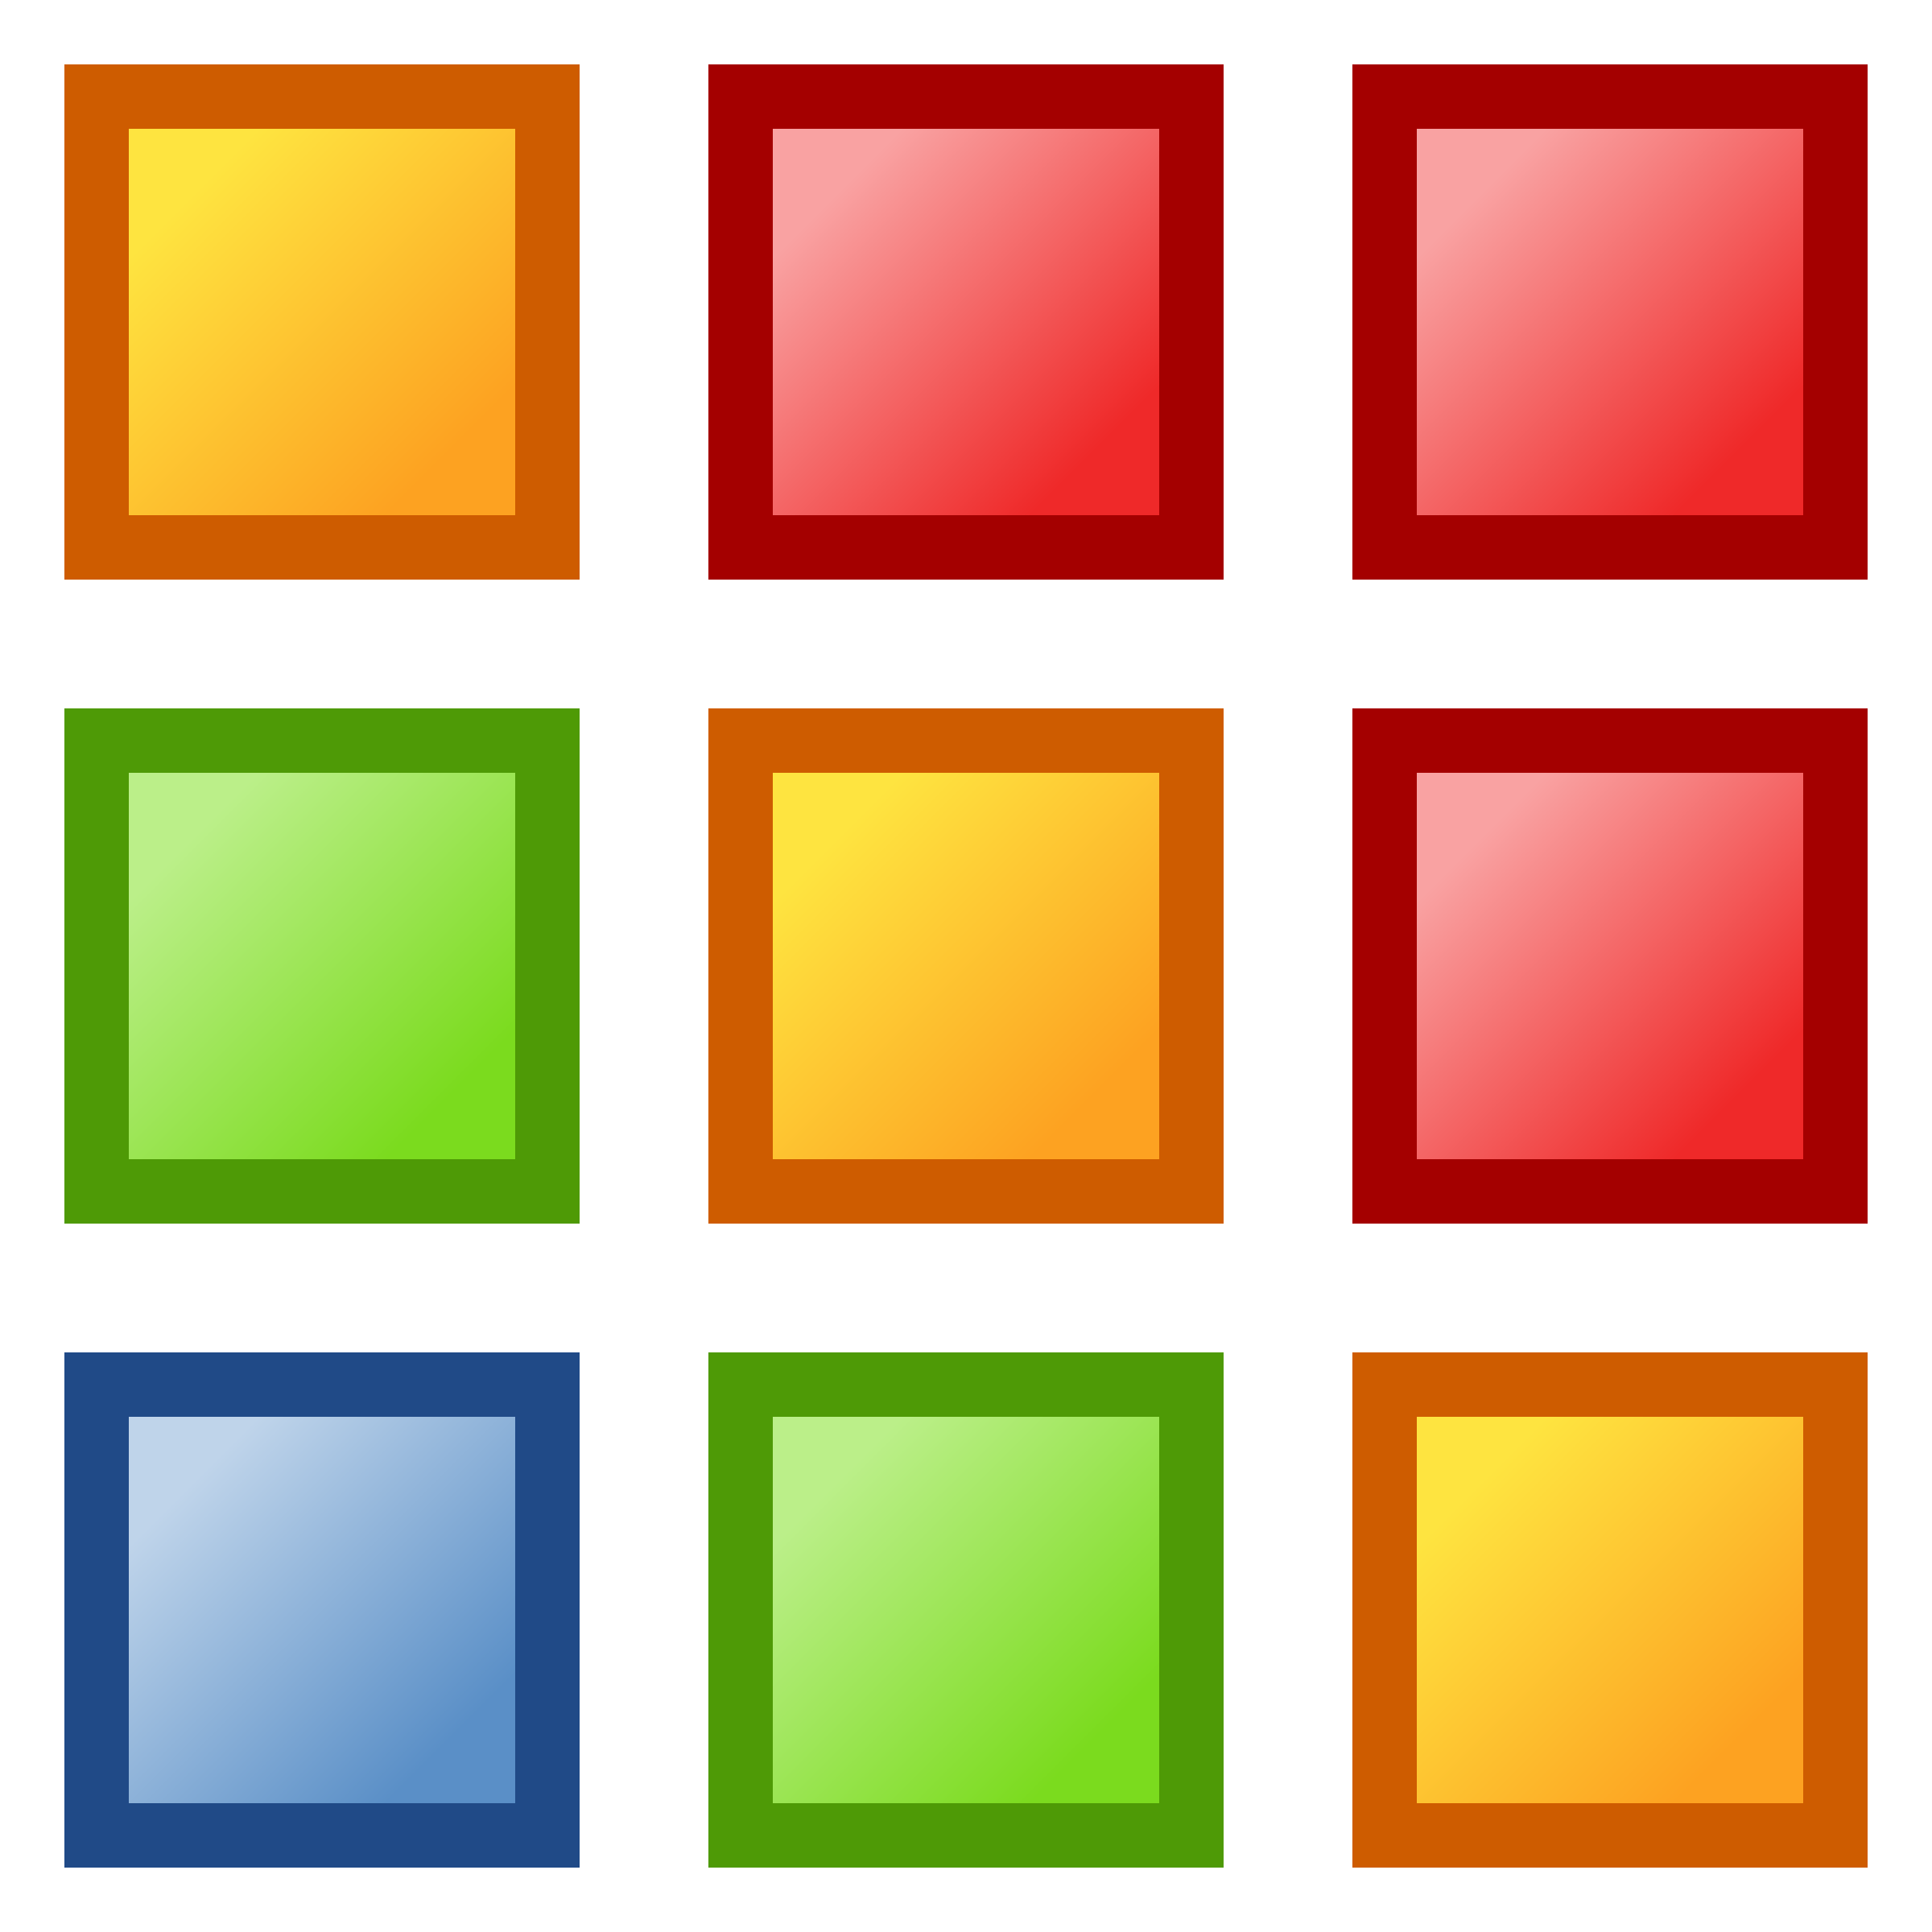 Icon colors png image. Square clipart red color